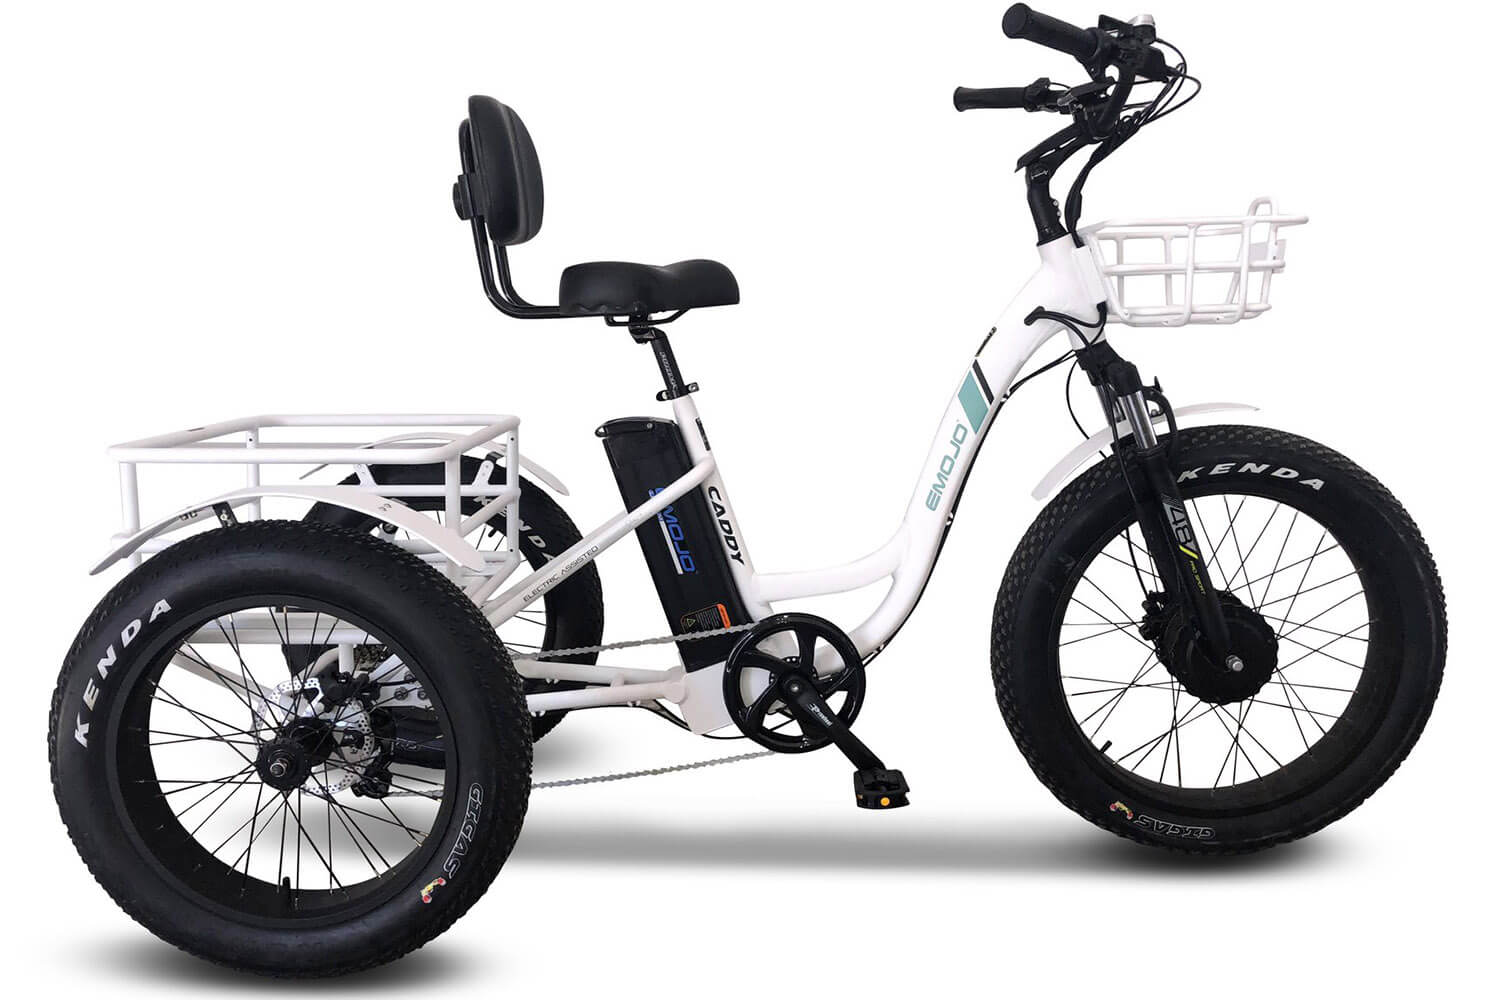 EMOJO Caddy Pro 2020 Fat Tire Electric Trike Tricycle White